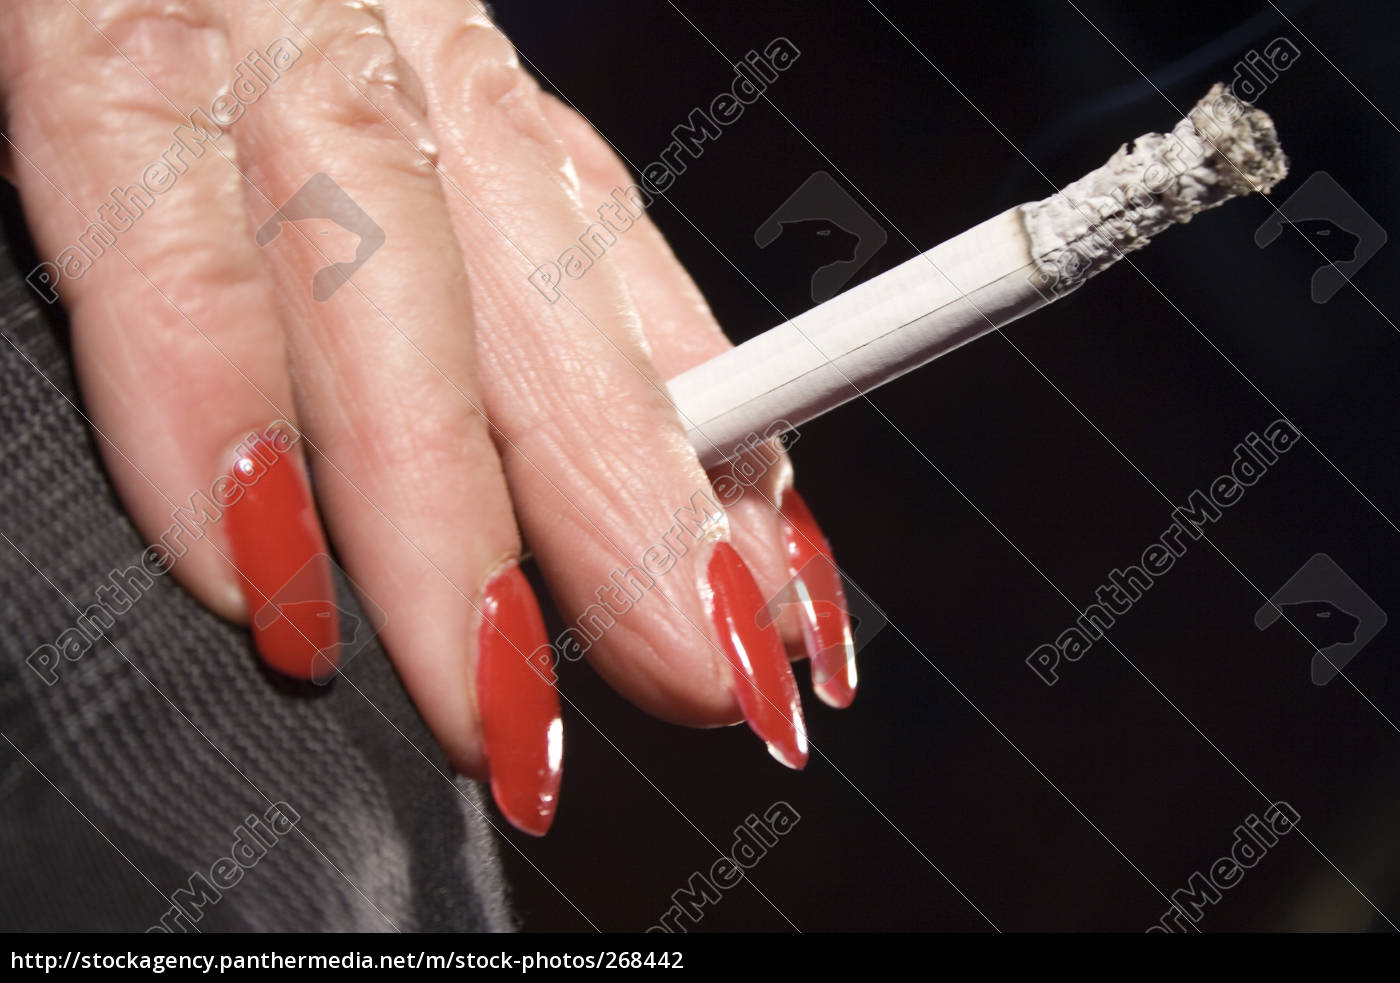 hand, with, cigarette, ii - 268442